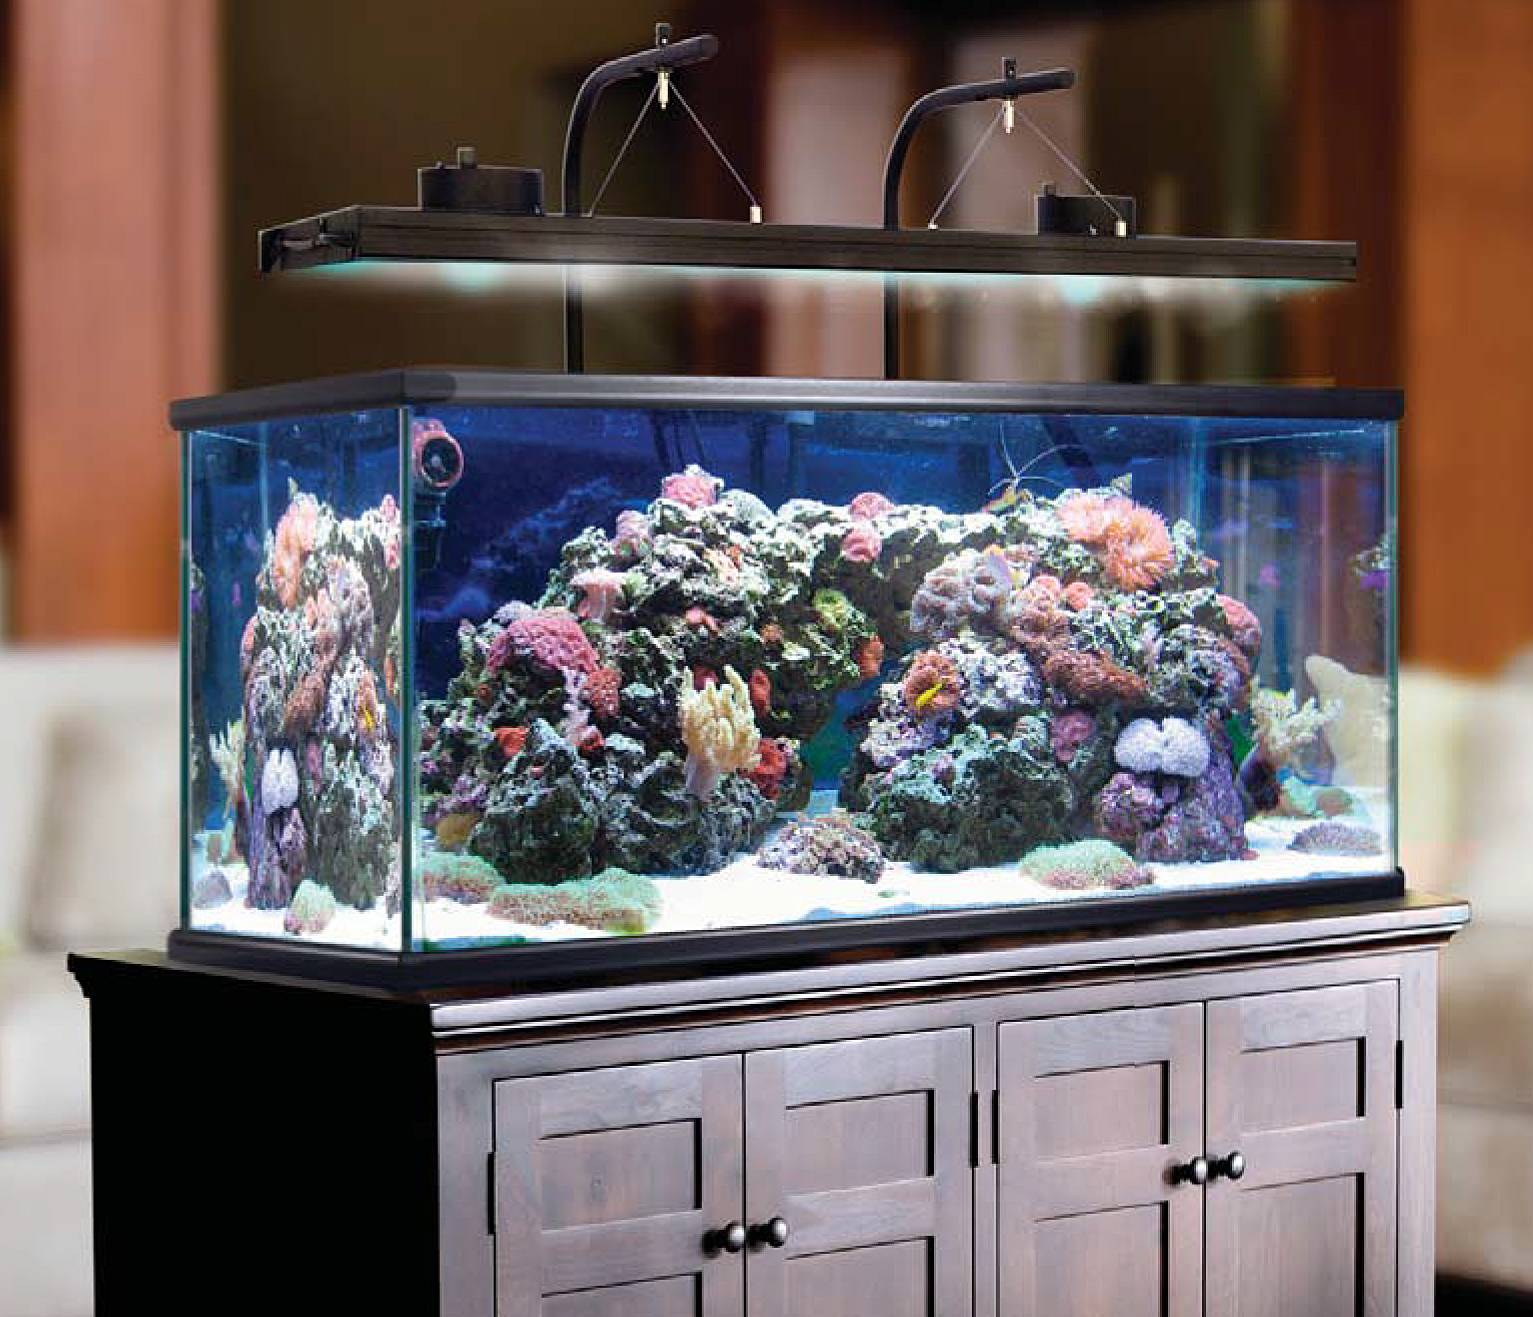 Build Your Perfect Reef Light with Aquatic Life's New T5HO/LED Hybrid Light Fixture